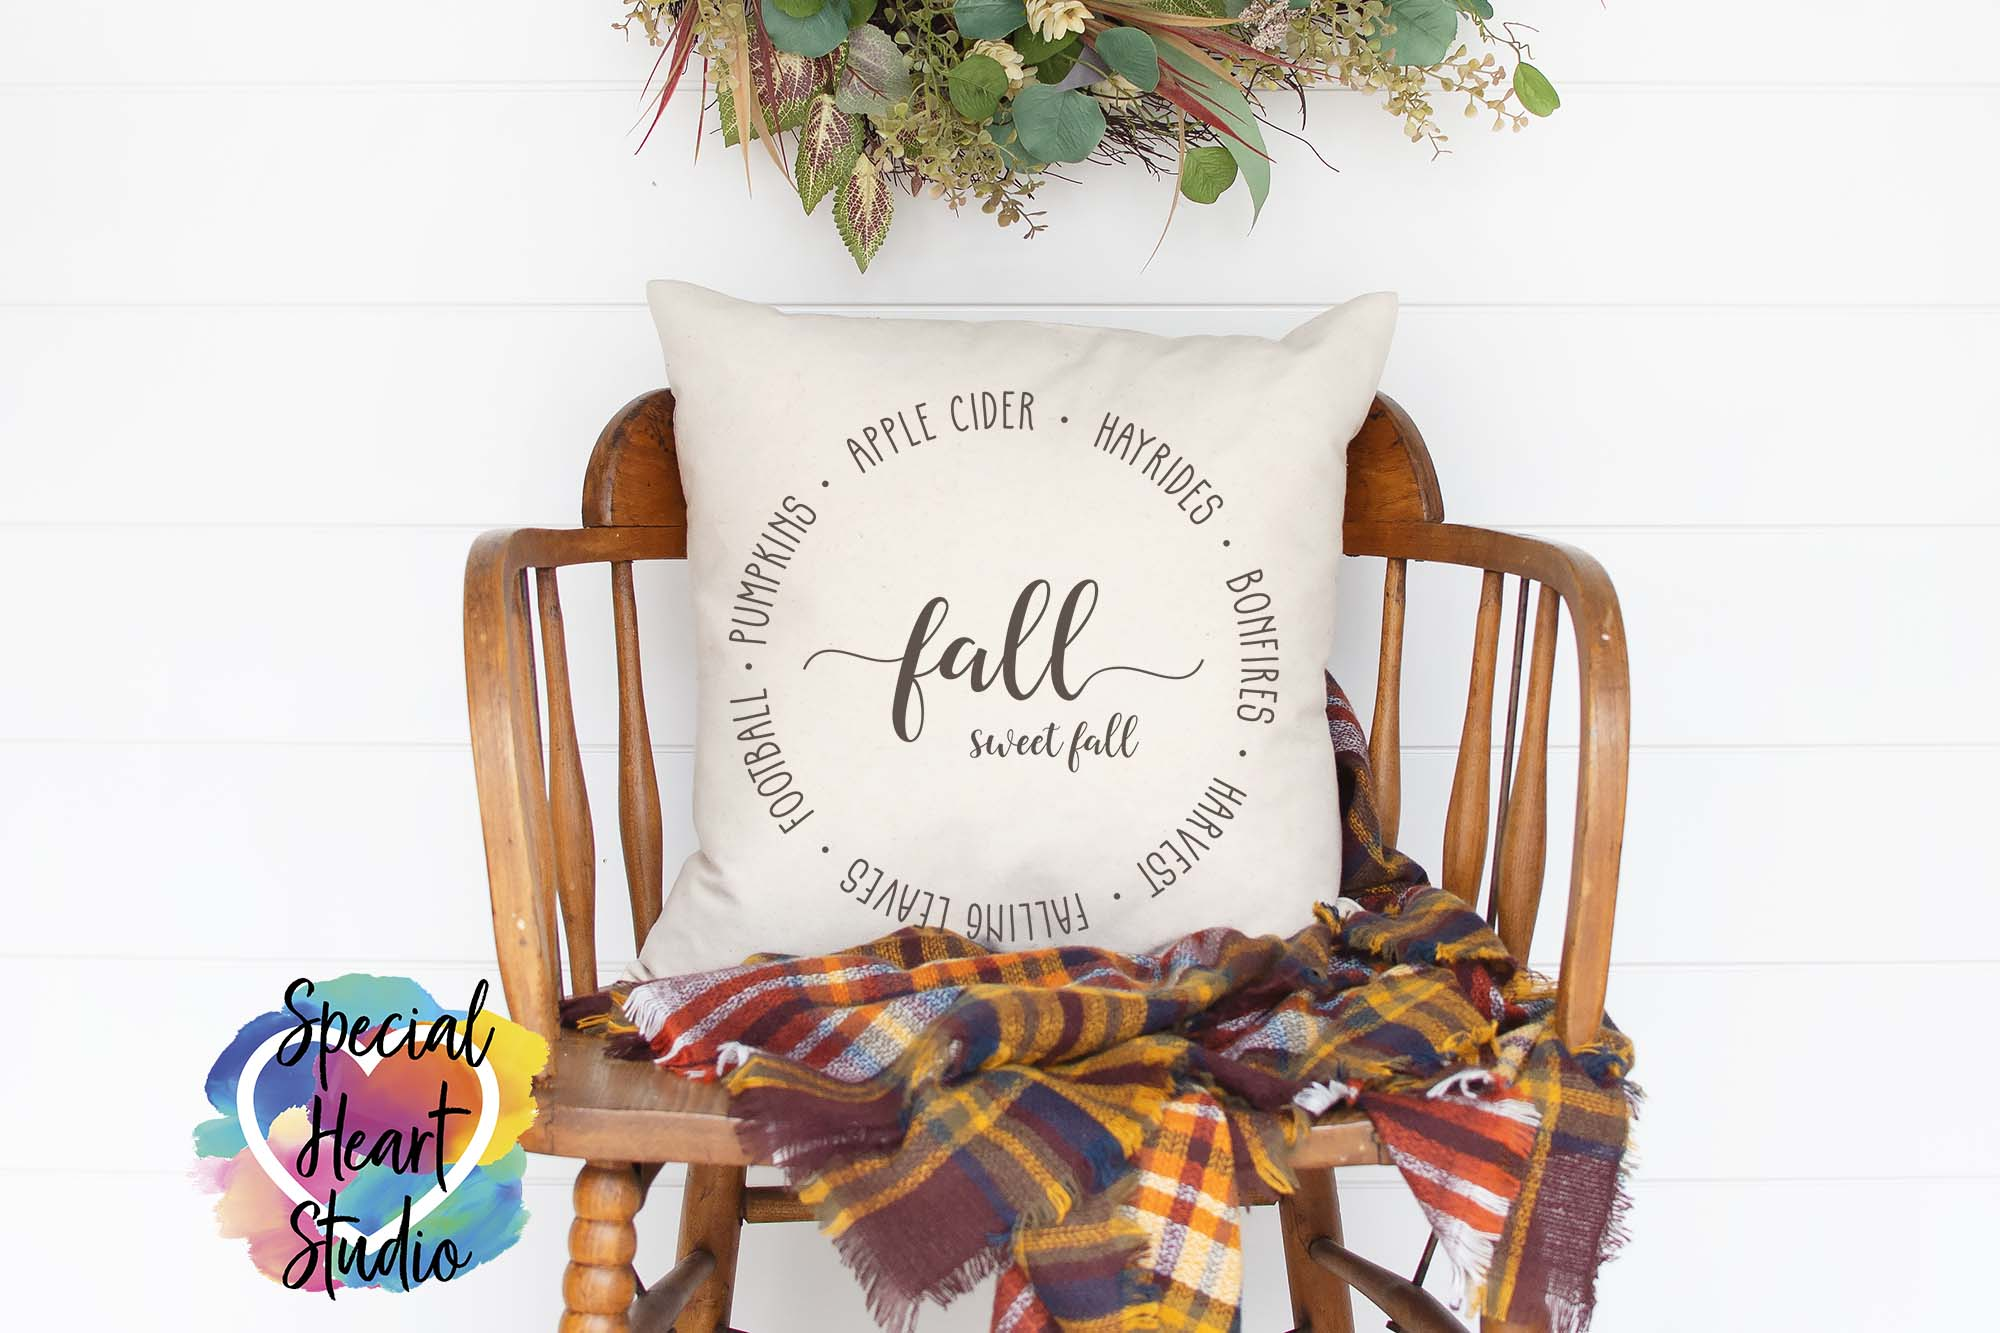 Fall Sweet Fall SVG - Home decor, sign, pillow cut file example image 1